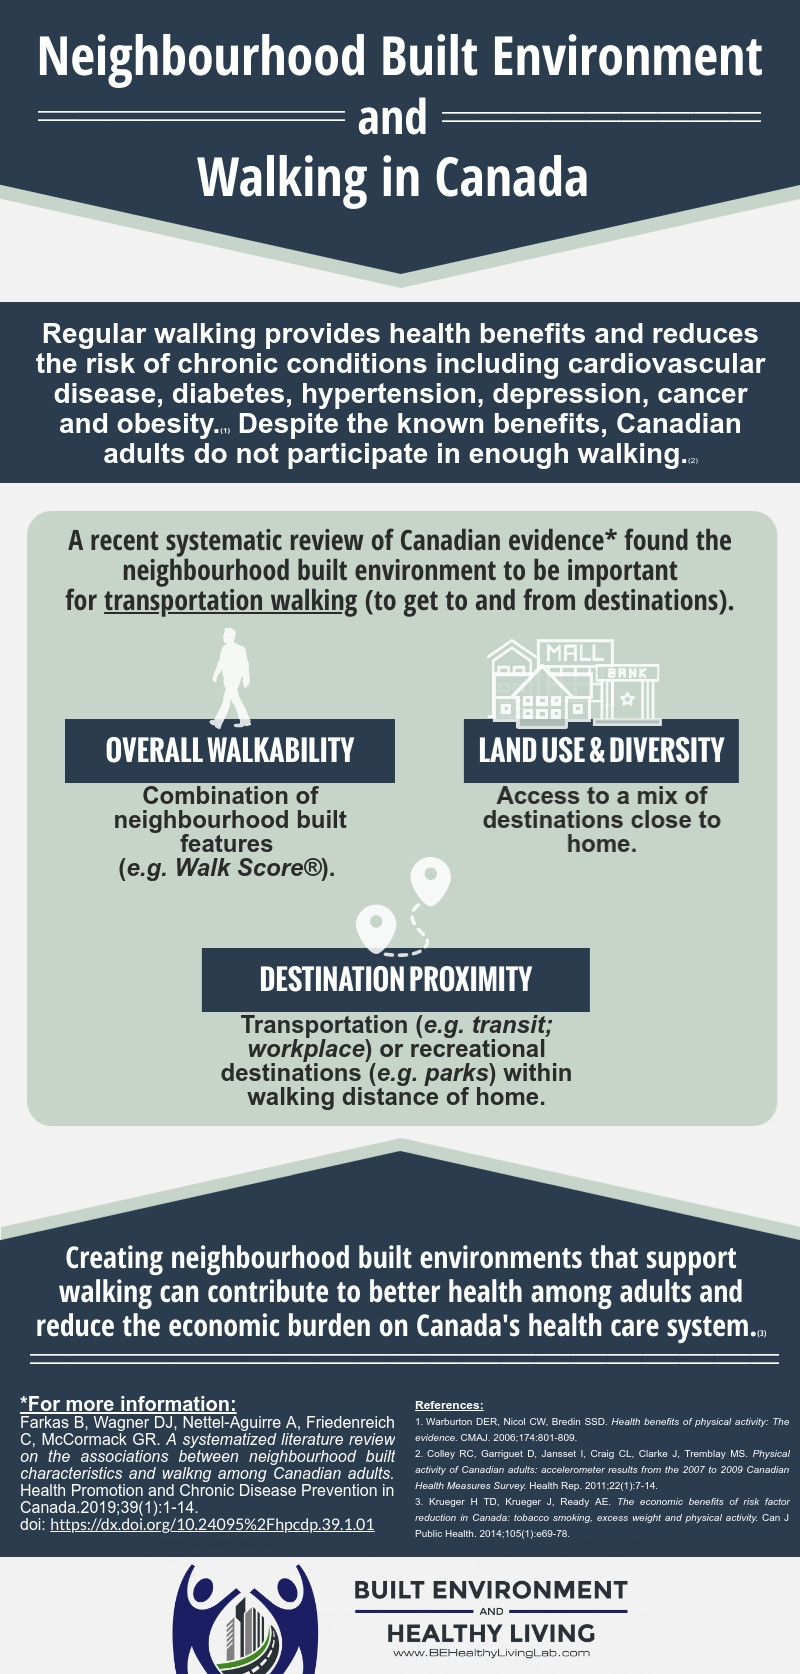 Results from a systematized literature review of Canadian evidence on the association between the built environment and walking for different purposes among Canadian adults.